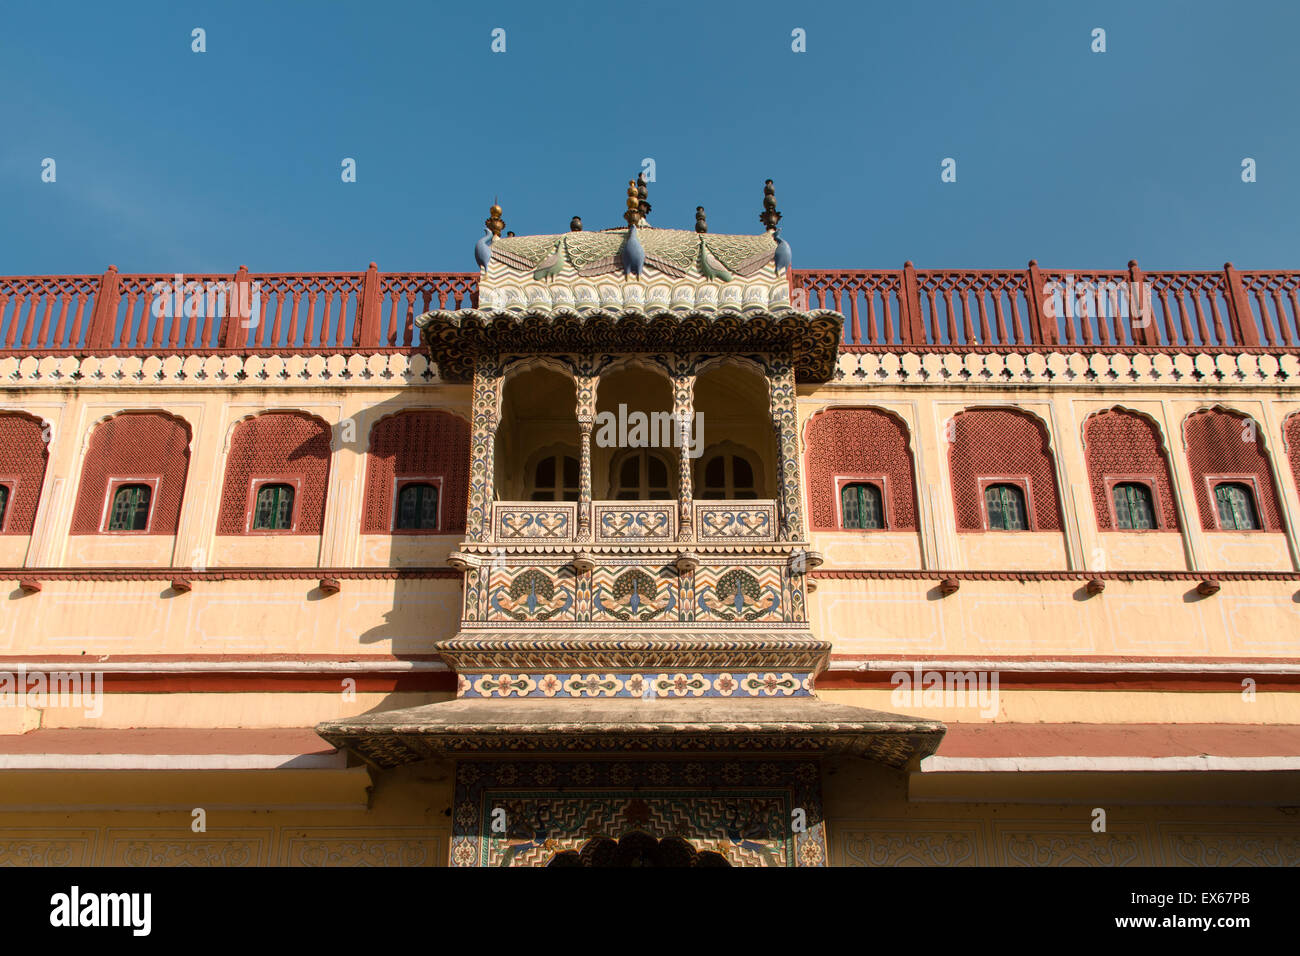 Balcony in the courtyard of the Chandra Mahal City Palace, Jaipur, Rajasthan, India - Stock Image